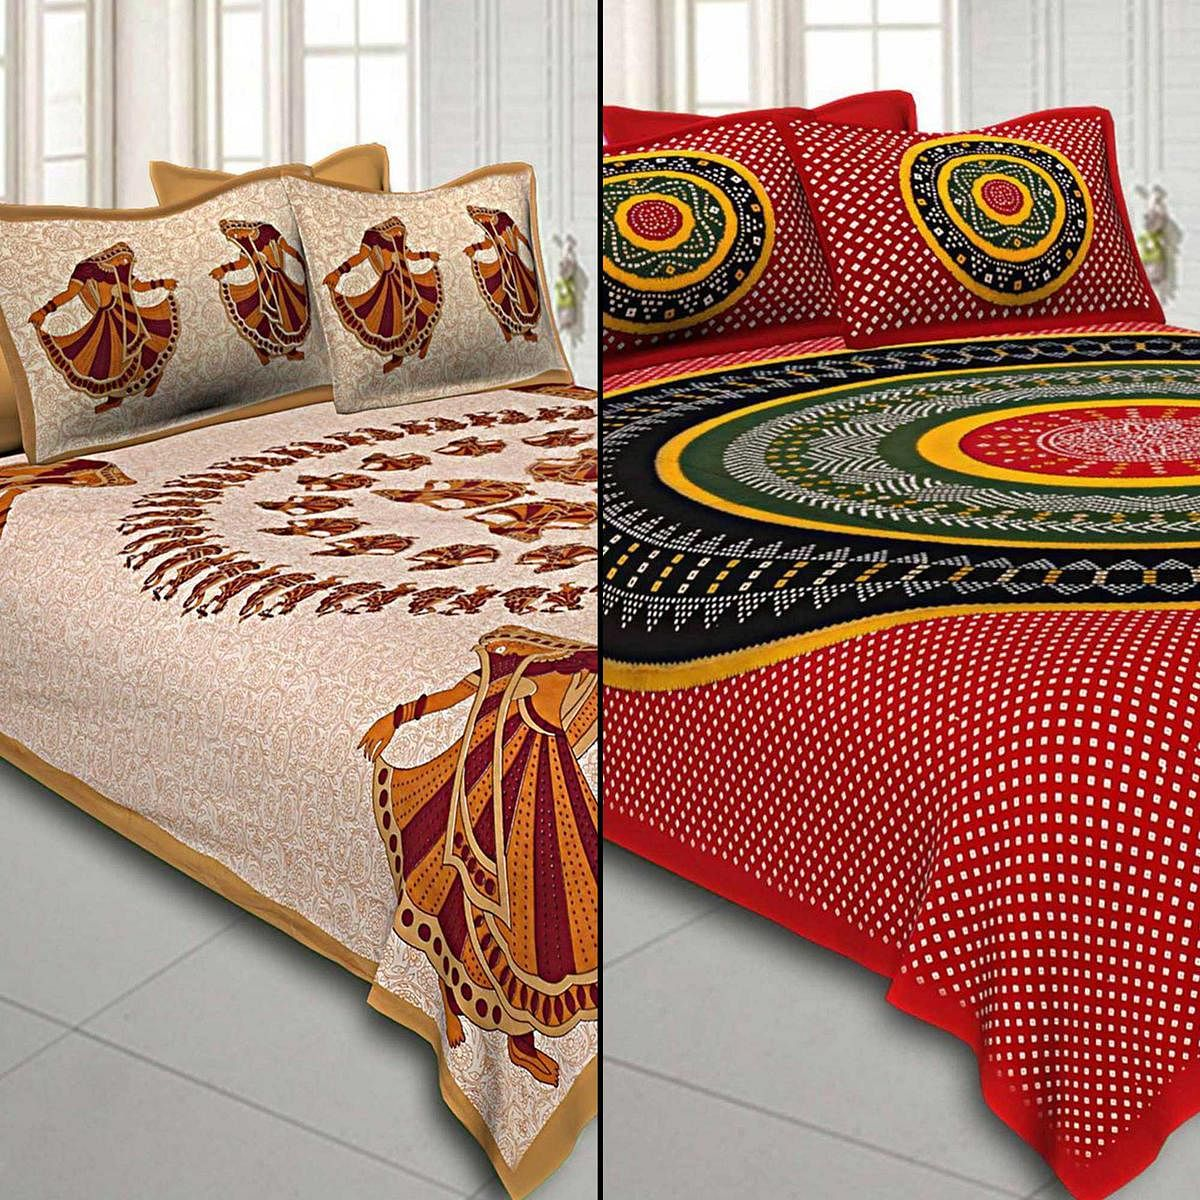 Marvellous Printed Double Sized Bed Sheets With 2 Pillow Covers - Pack of 2